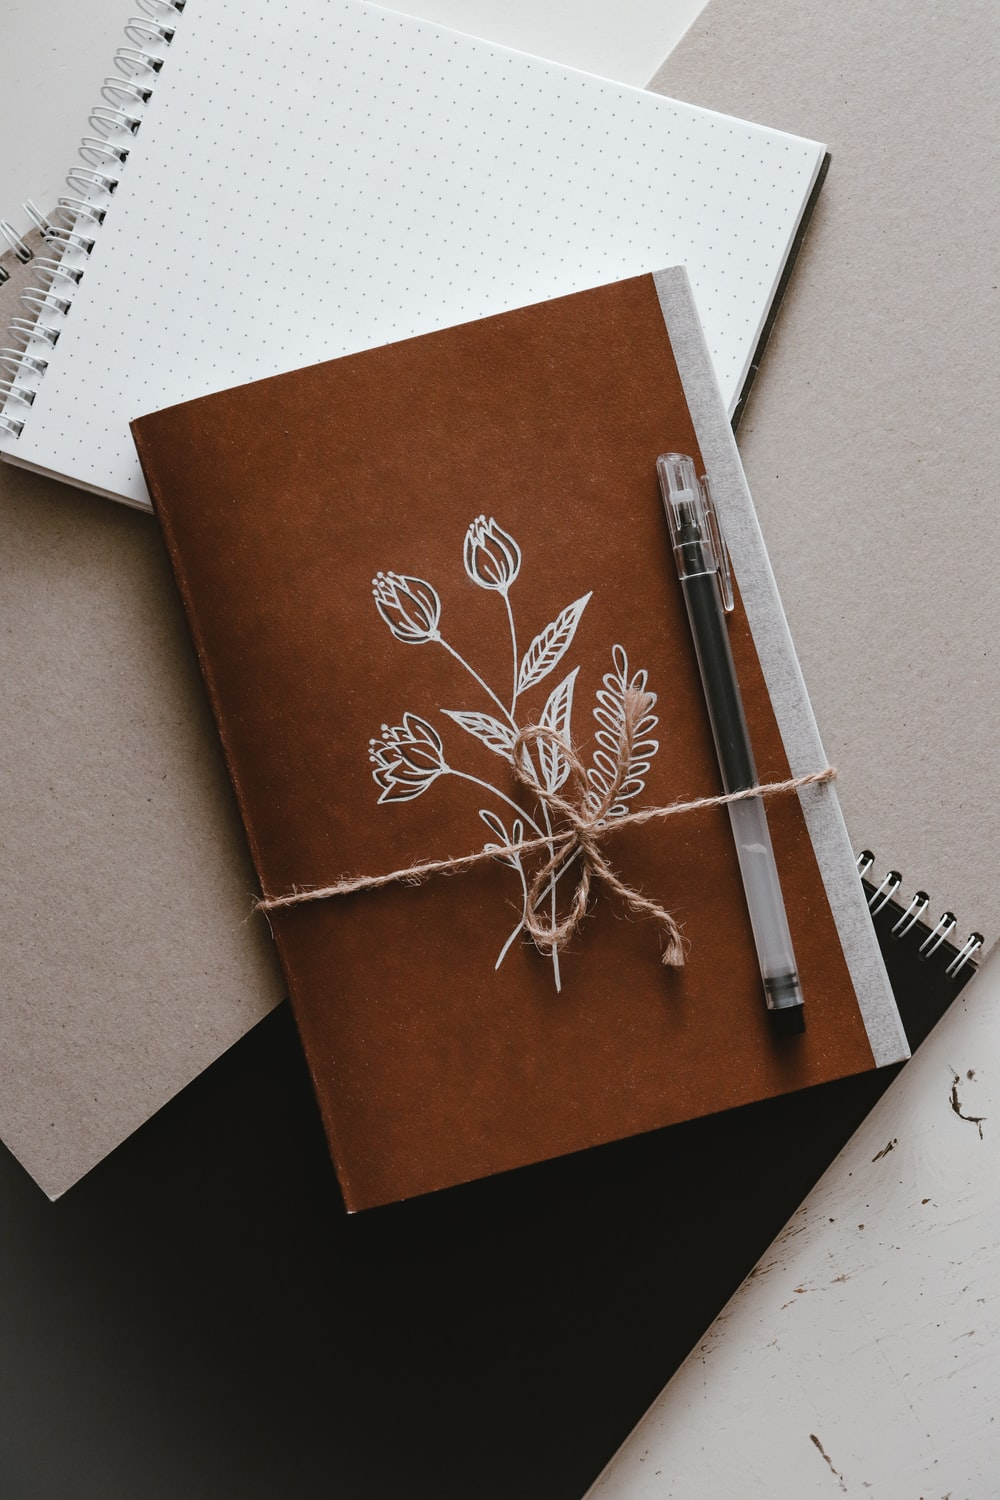 brown and white book on white paper